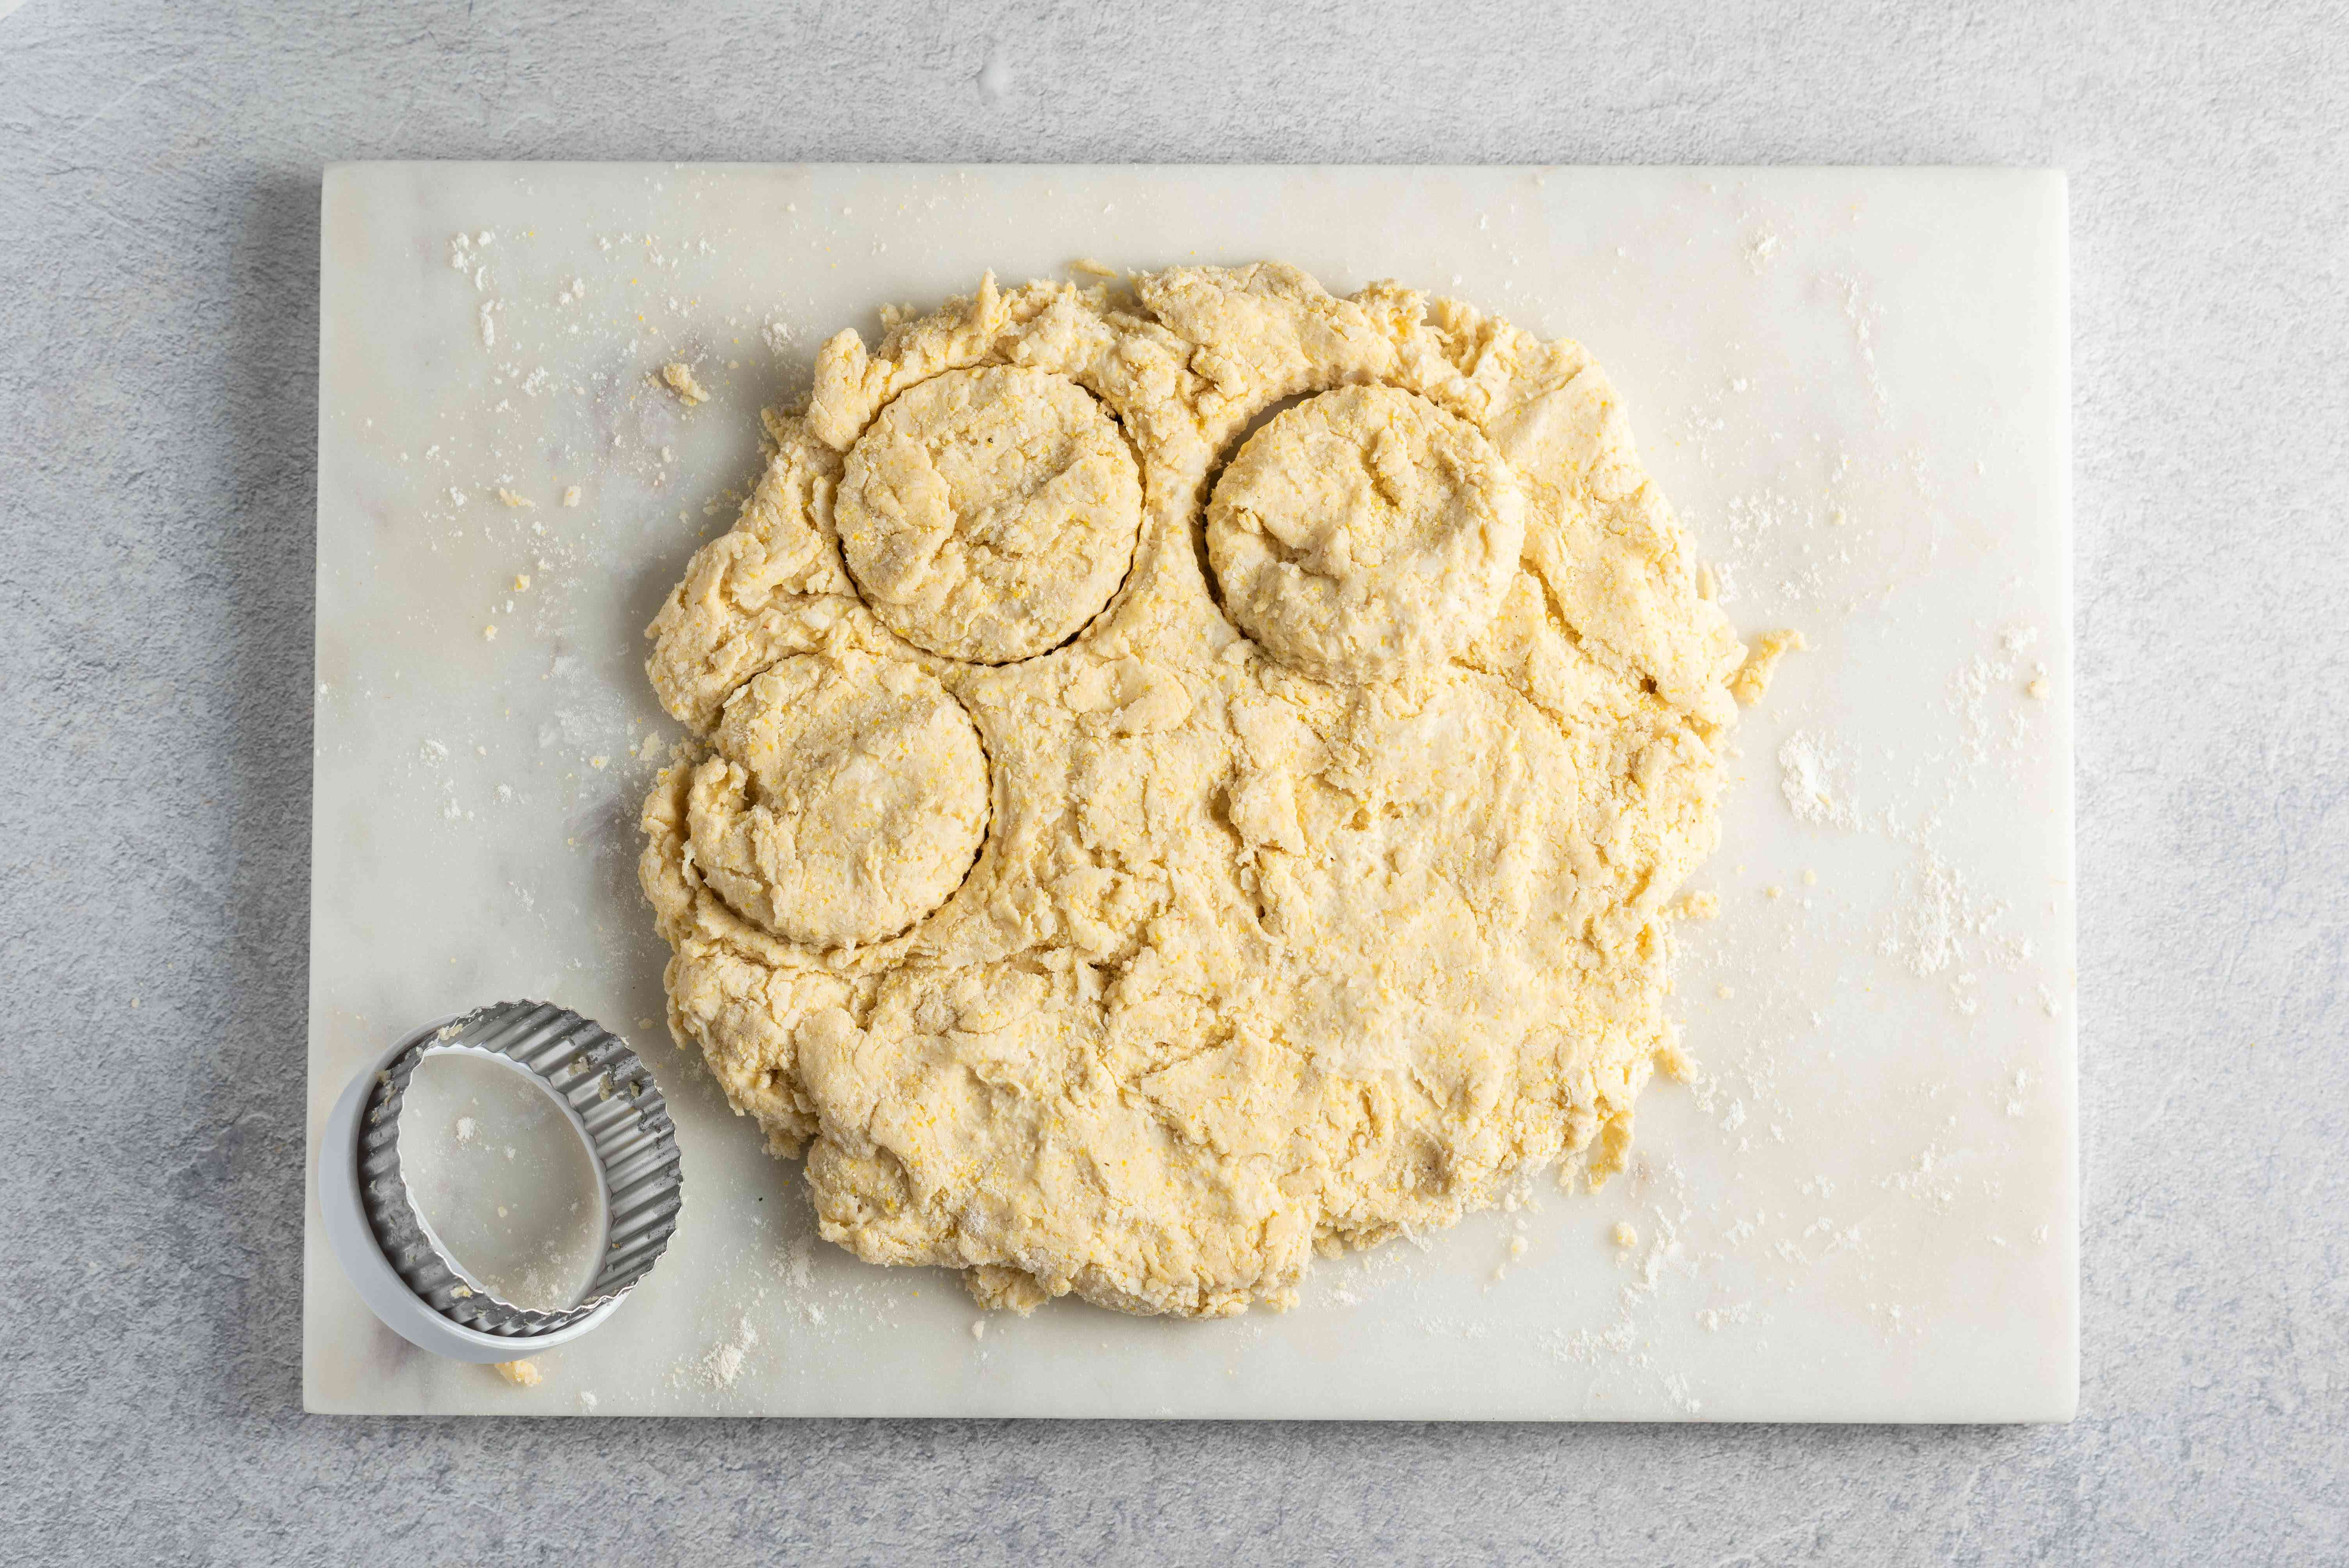 Roll out biscuits